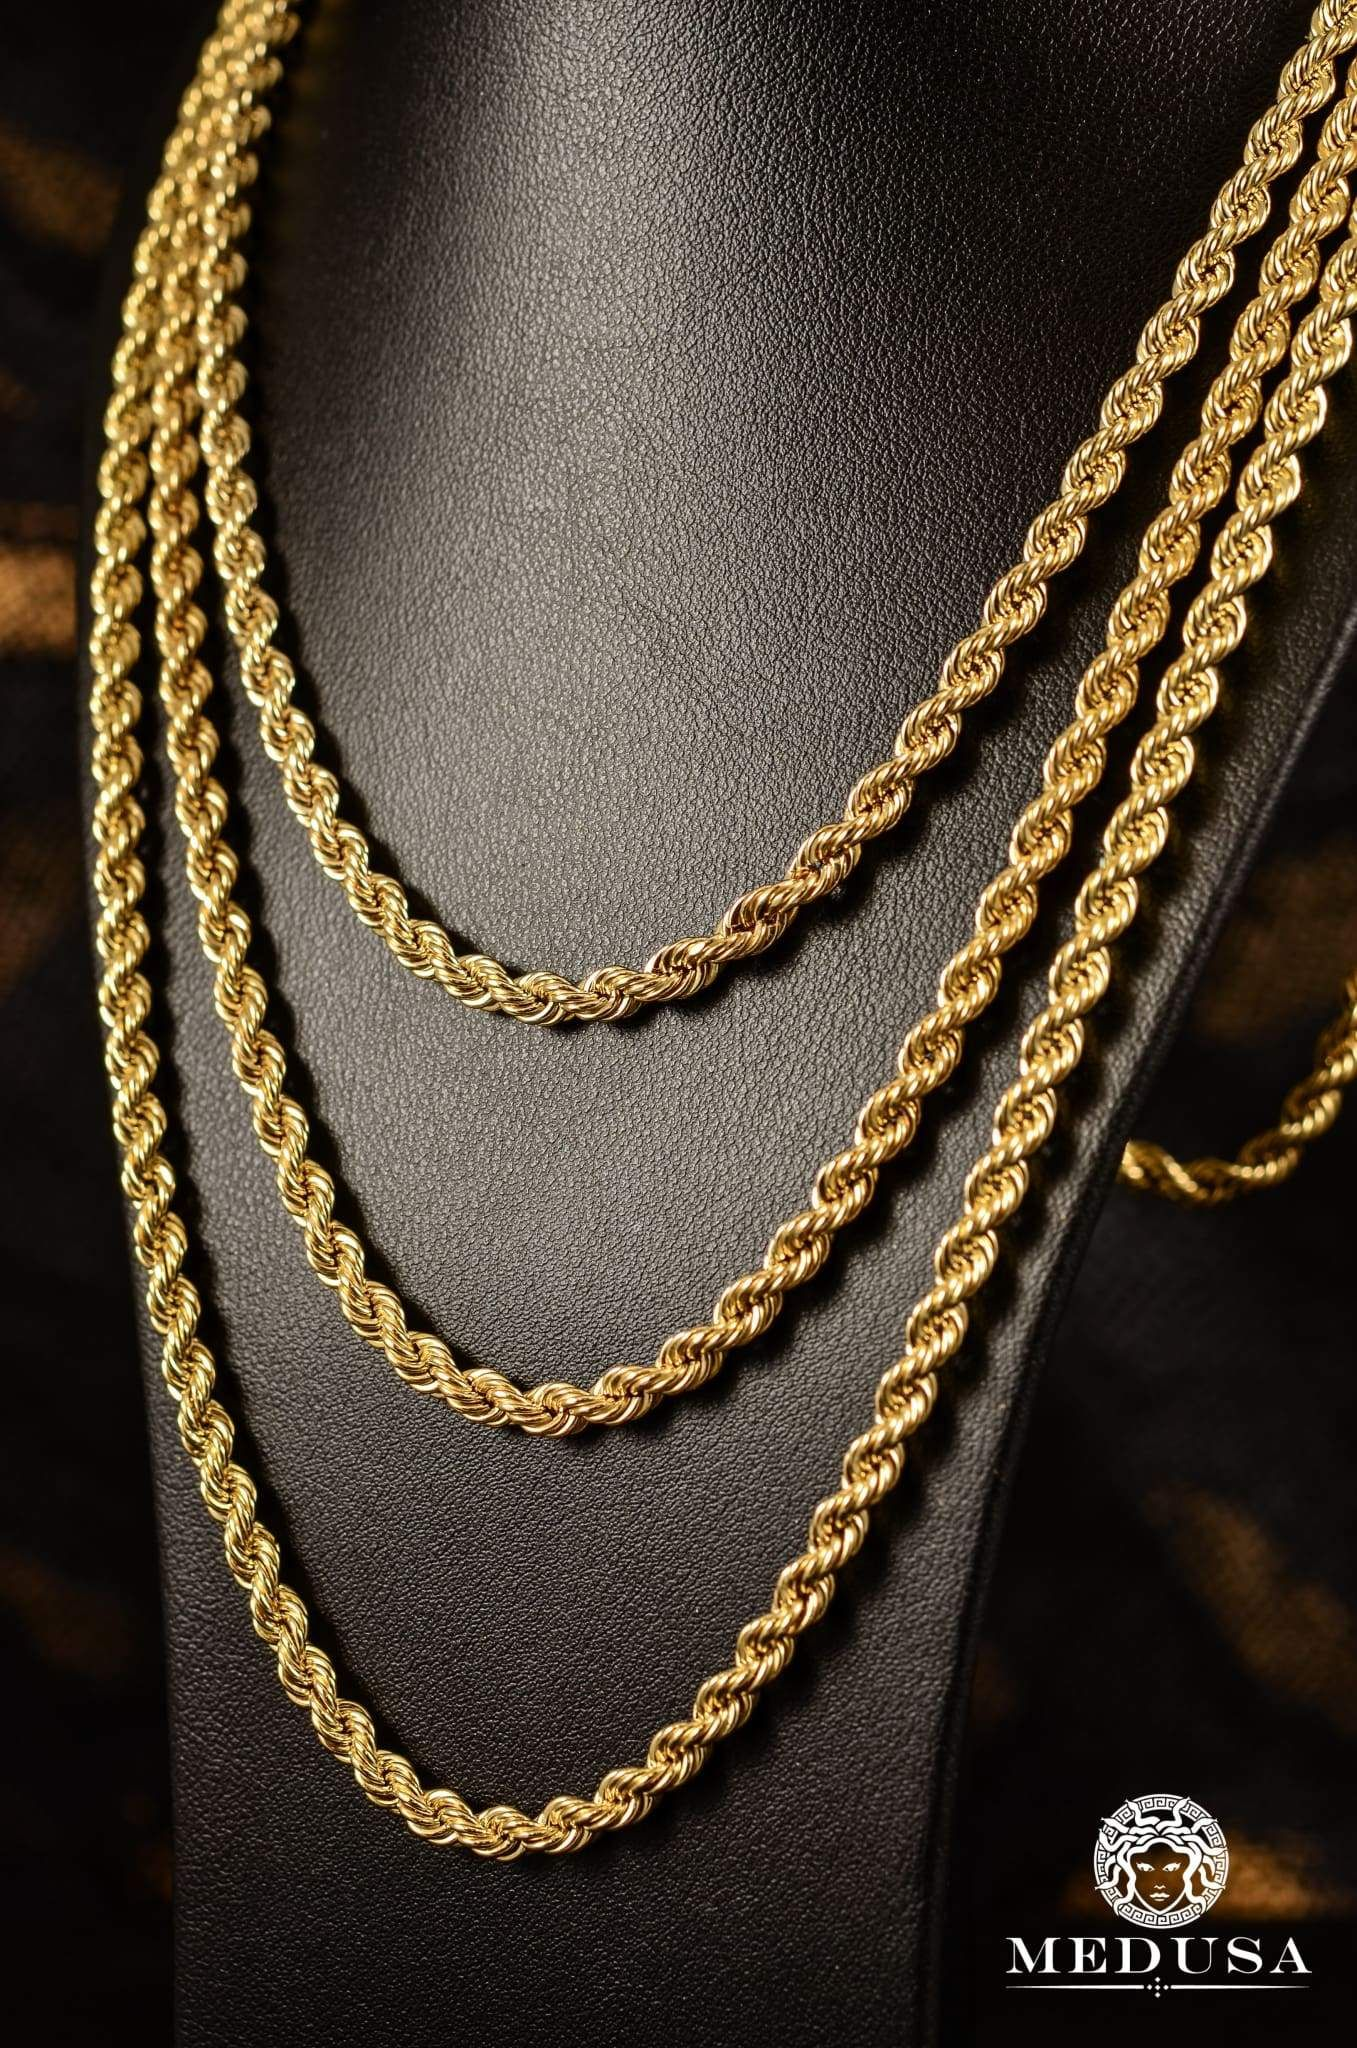 4mm Torsade Gold Chain Design Gold Chains For Men Gold Chain Jewelry